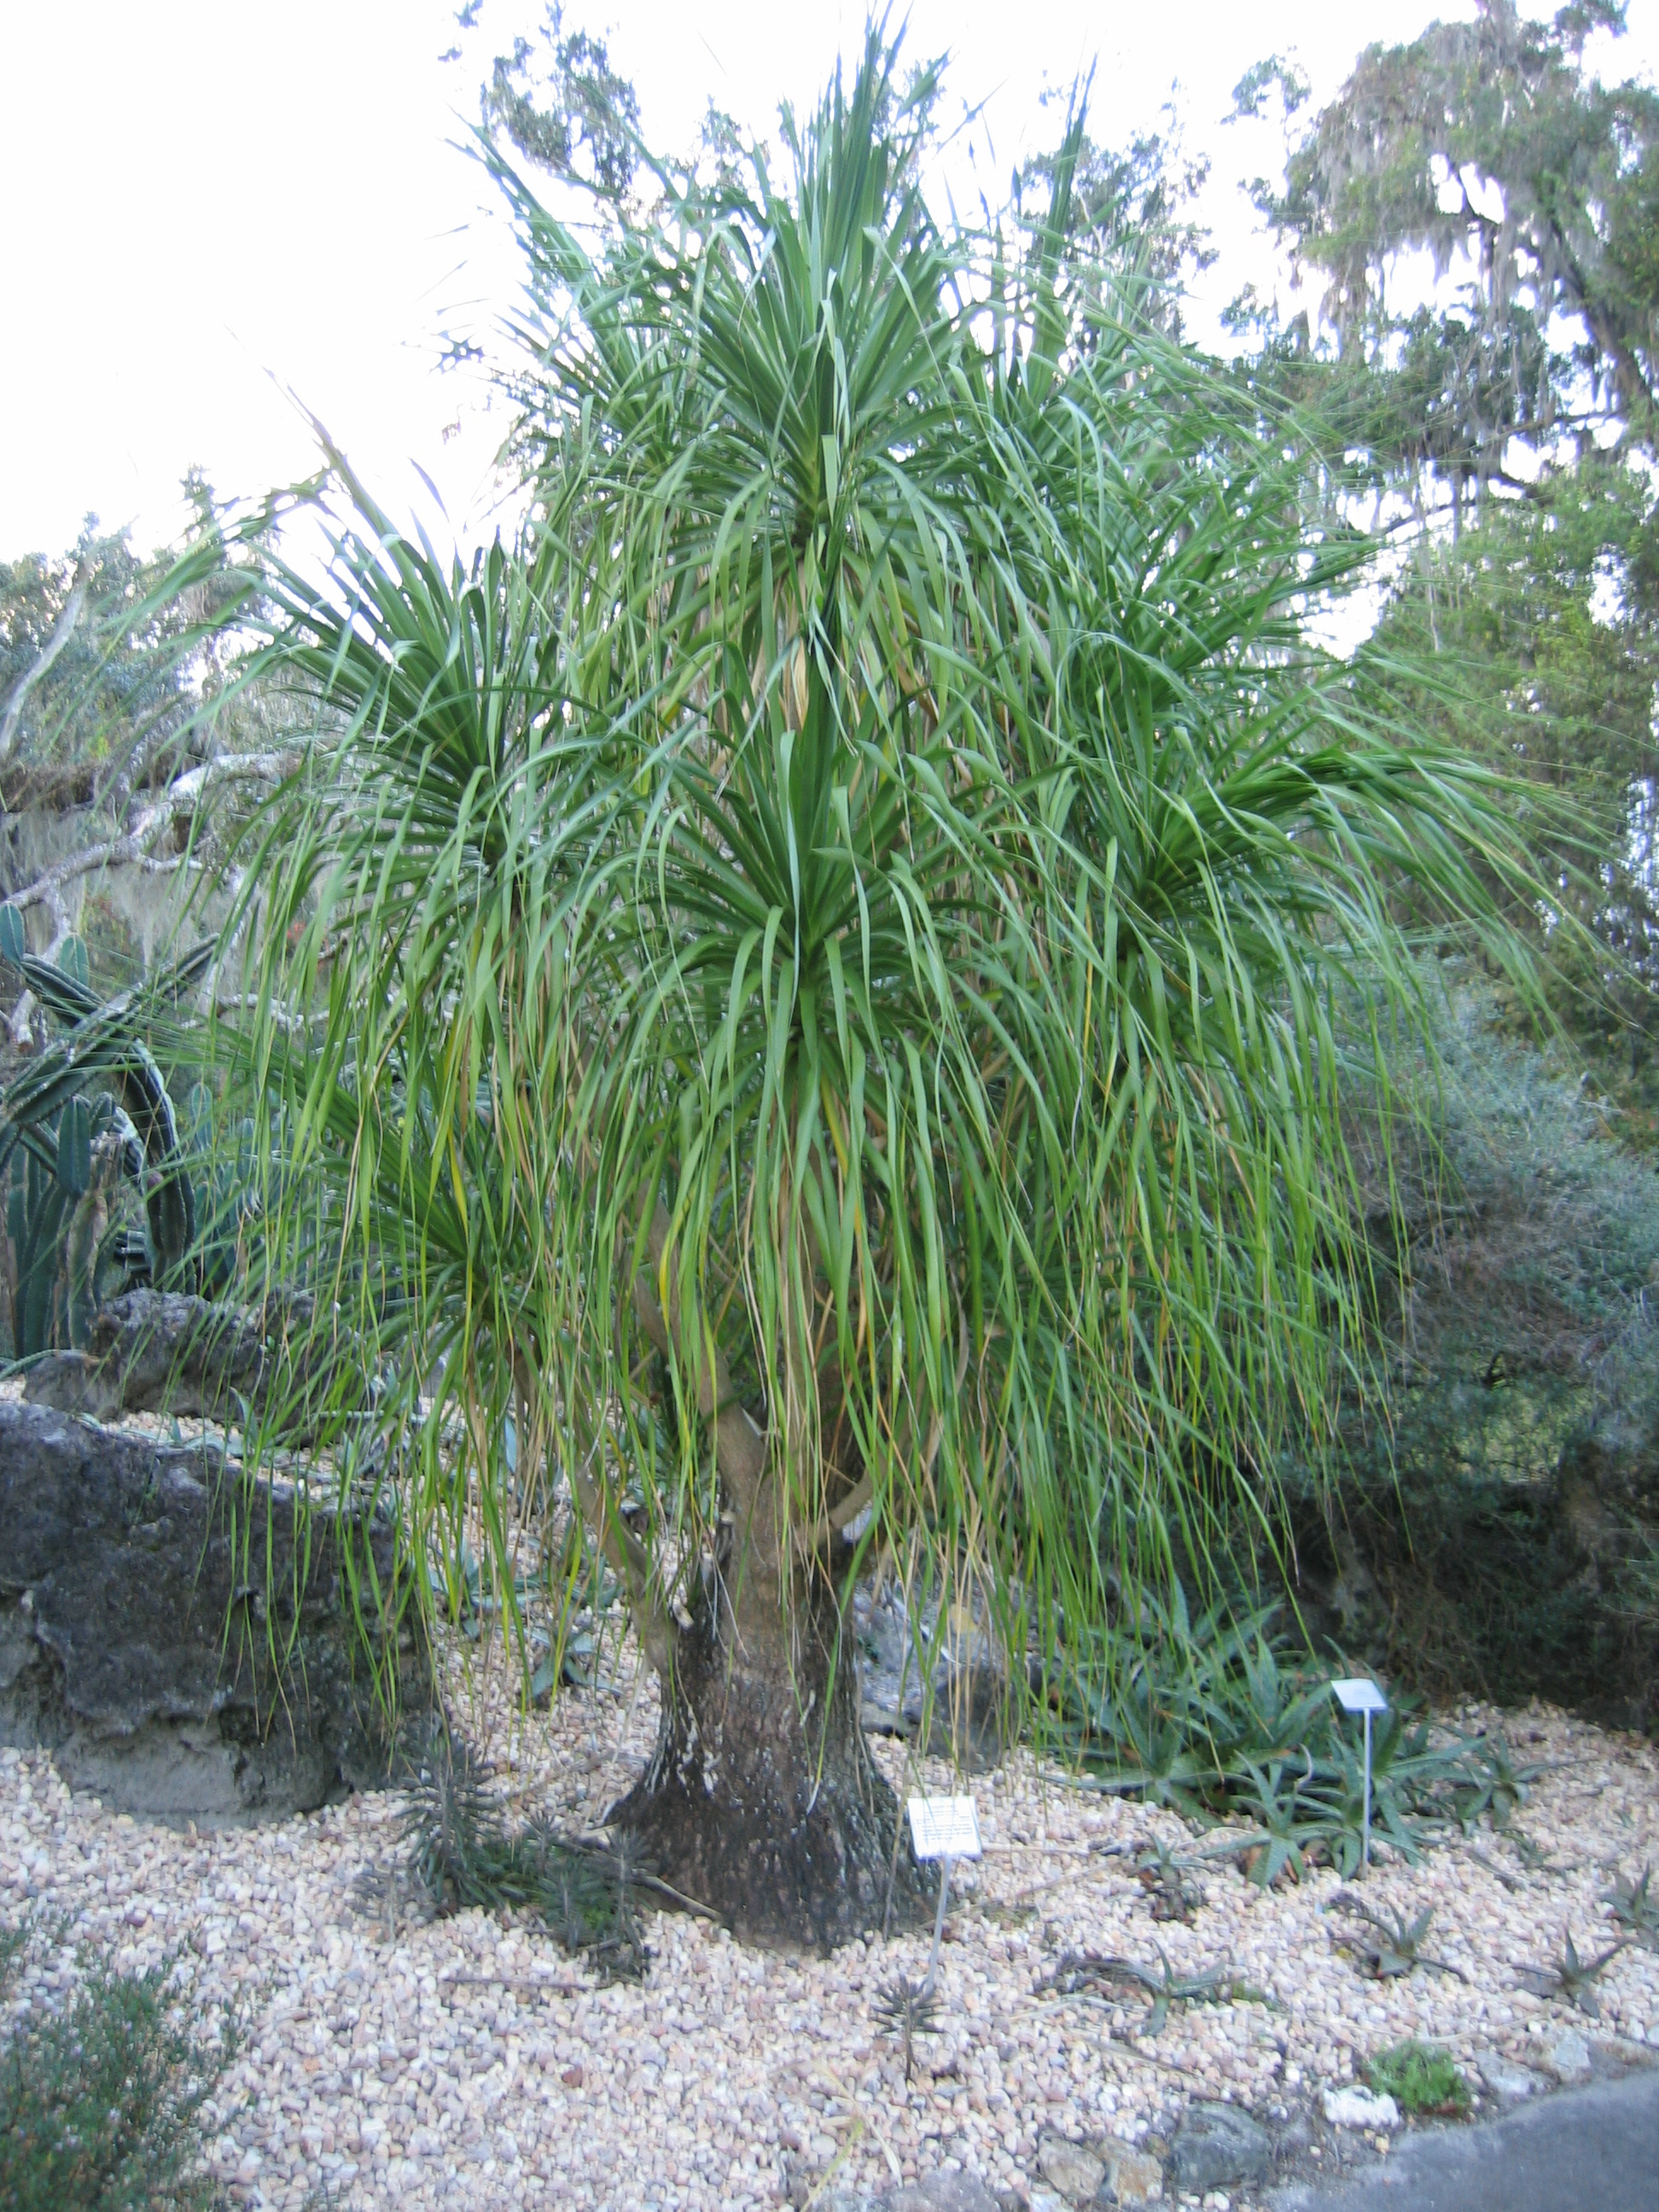 post-526-1224604440 Ponytail Palm House Plant on elephant bush house plant, tall upright indoor plant, canary island date palm house plant, variegated ivy house plant, royal palm house plant, kentia palm house plant, king palm house plant, cast iron plant house plant, zinnia house plant, sage house plant, peach house plant, ponytail plant problems, ponytail plant care tips, ponytail bottle plant, bromeliads house plant, windmill palm house plant, periwinkle house plant, morning glory house plant, dracaena house plant, ponytail plant care indoor plants,